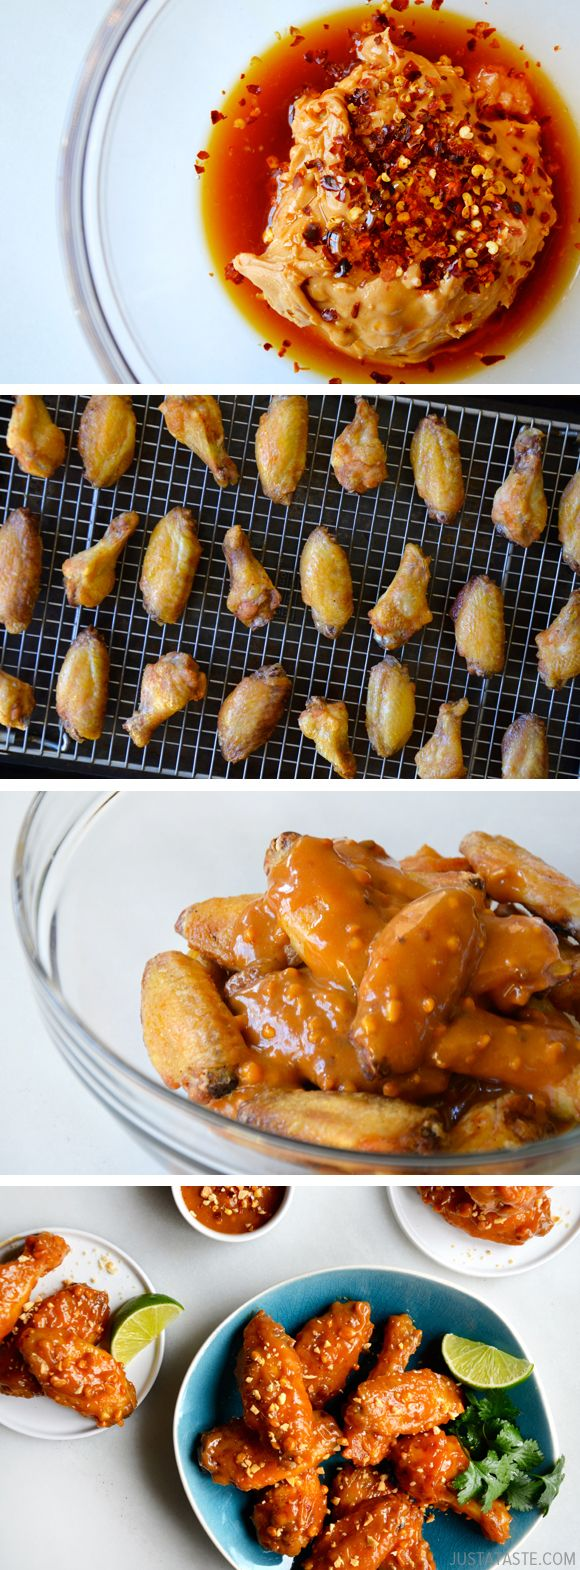 Crispy Baked Thai Chicken Wings with Peanut Sauce #recipe